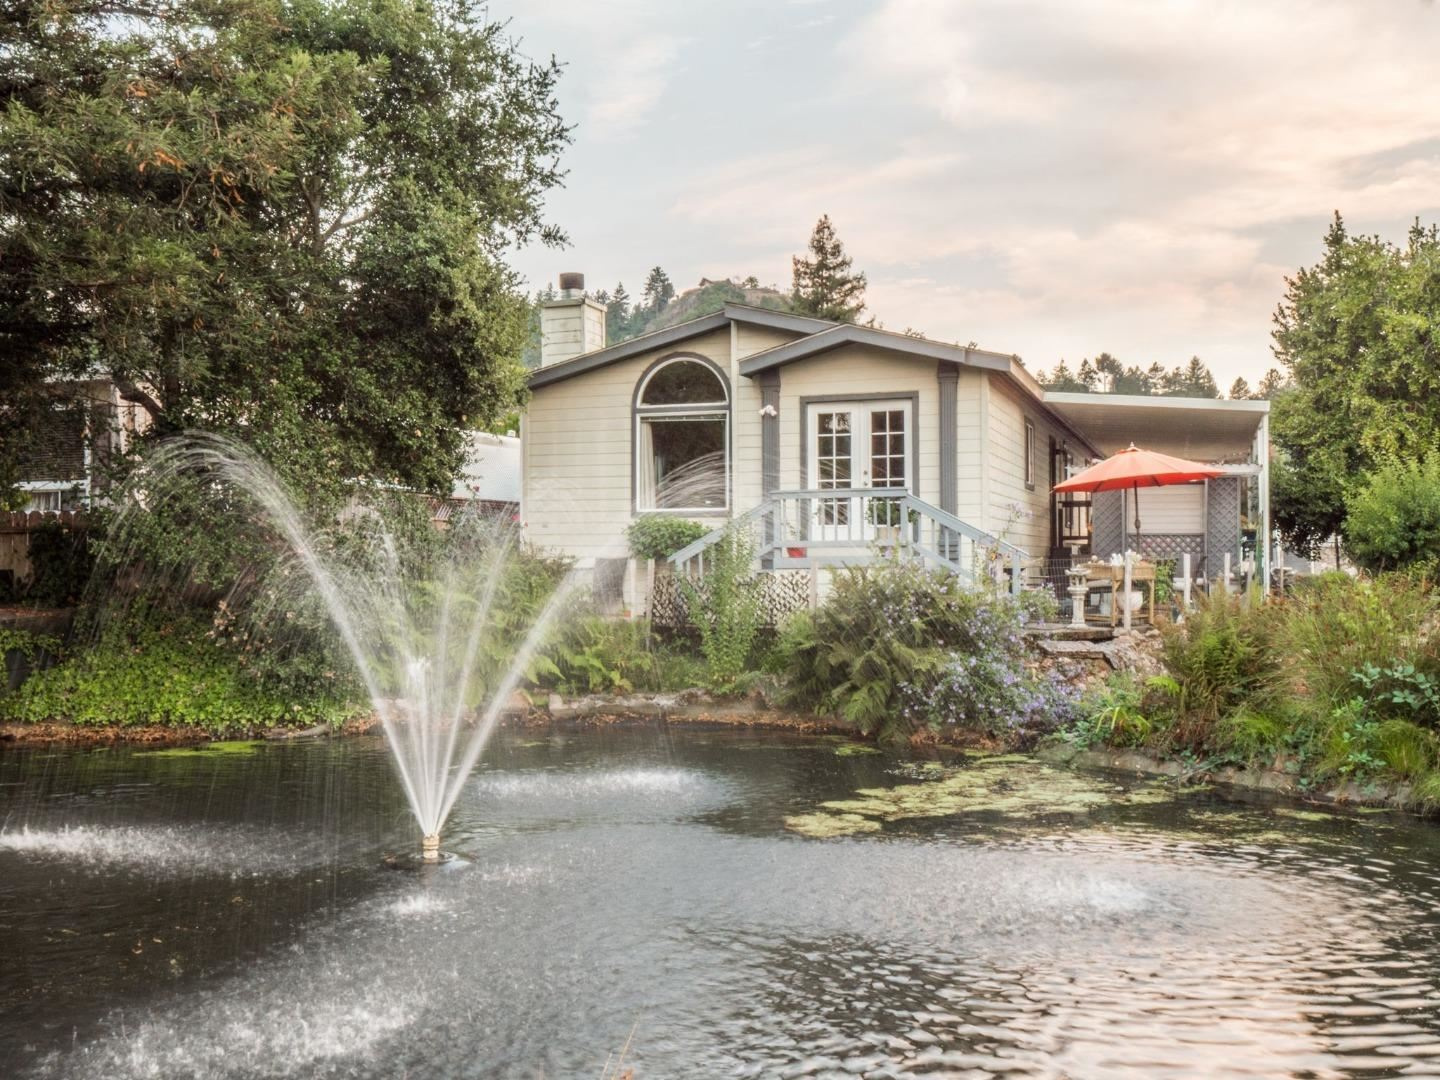 444 Whispering Pines DR 200, Scotts Valley, CA 95066 - #: ML81806867